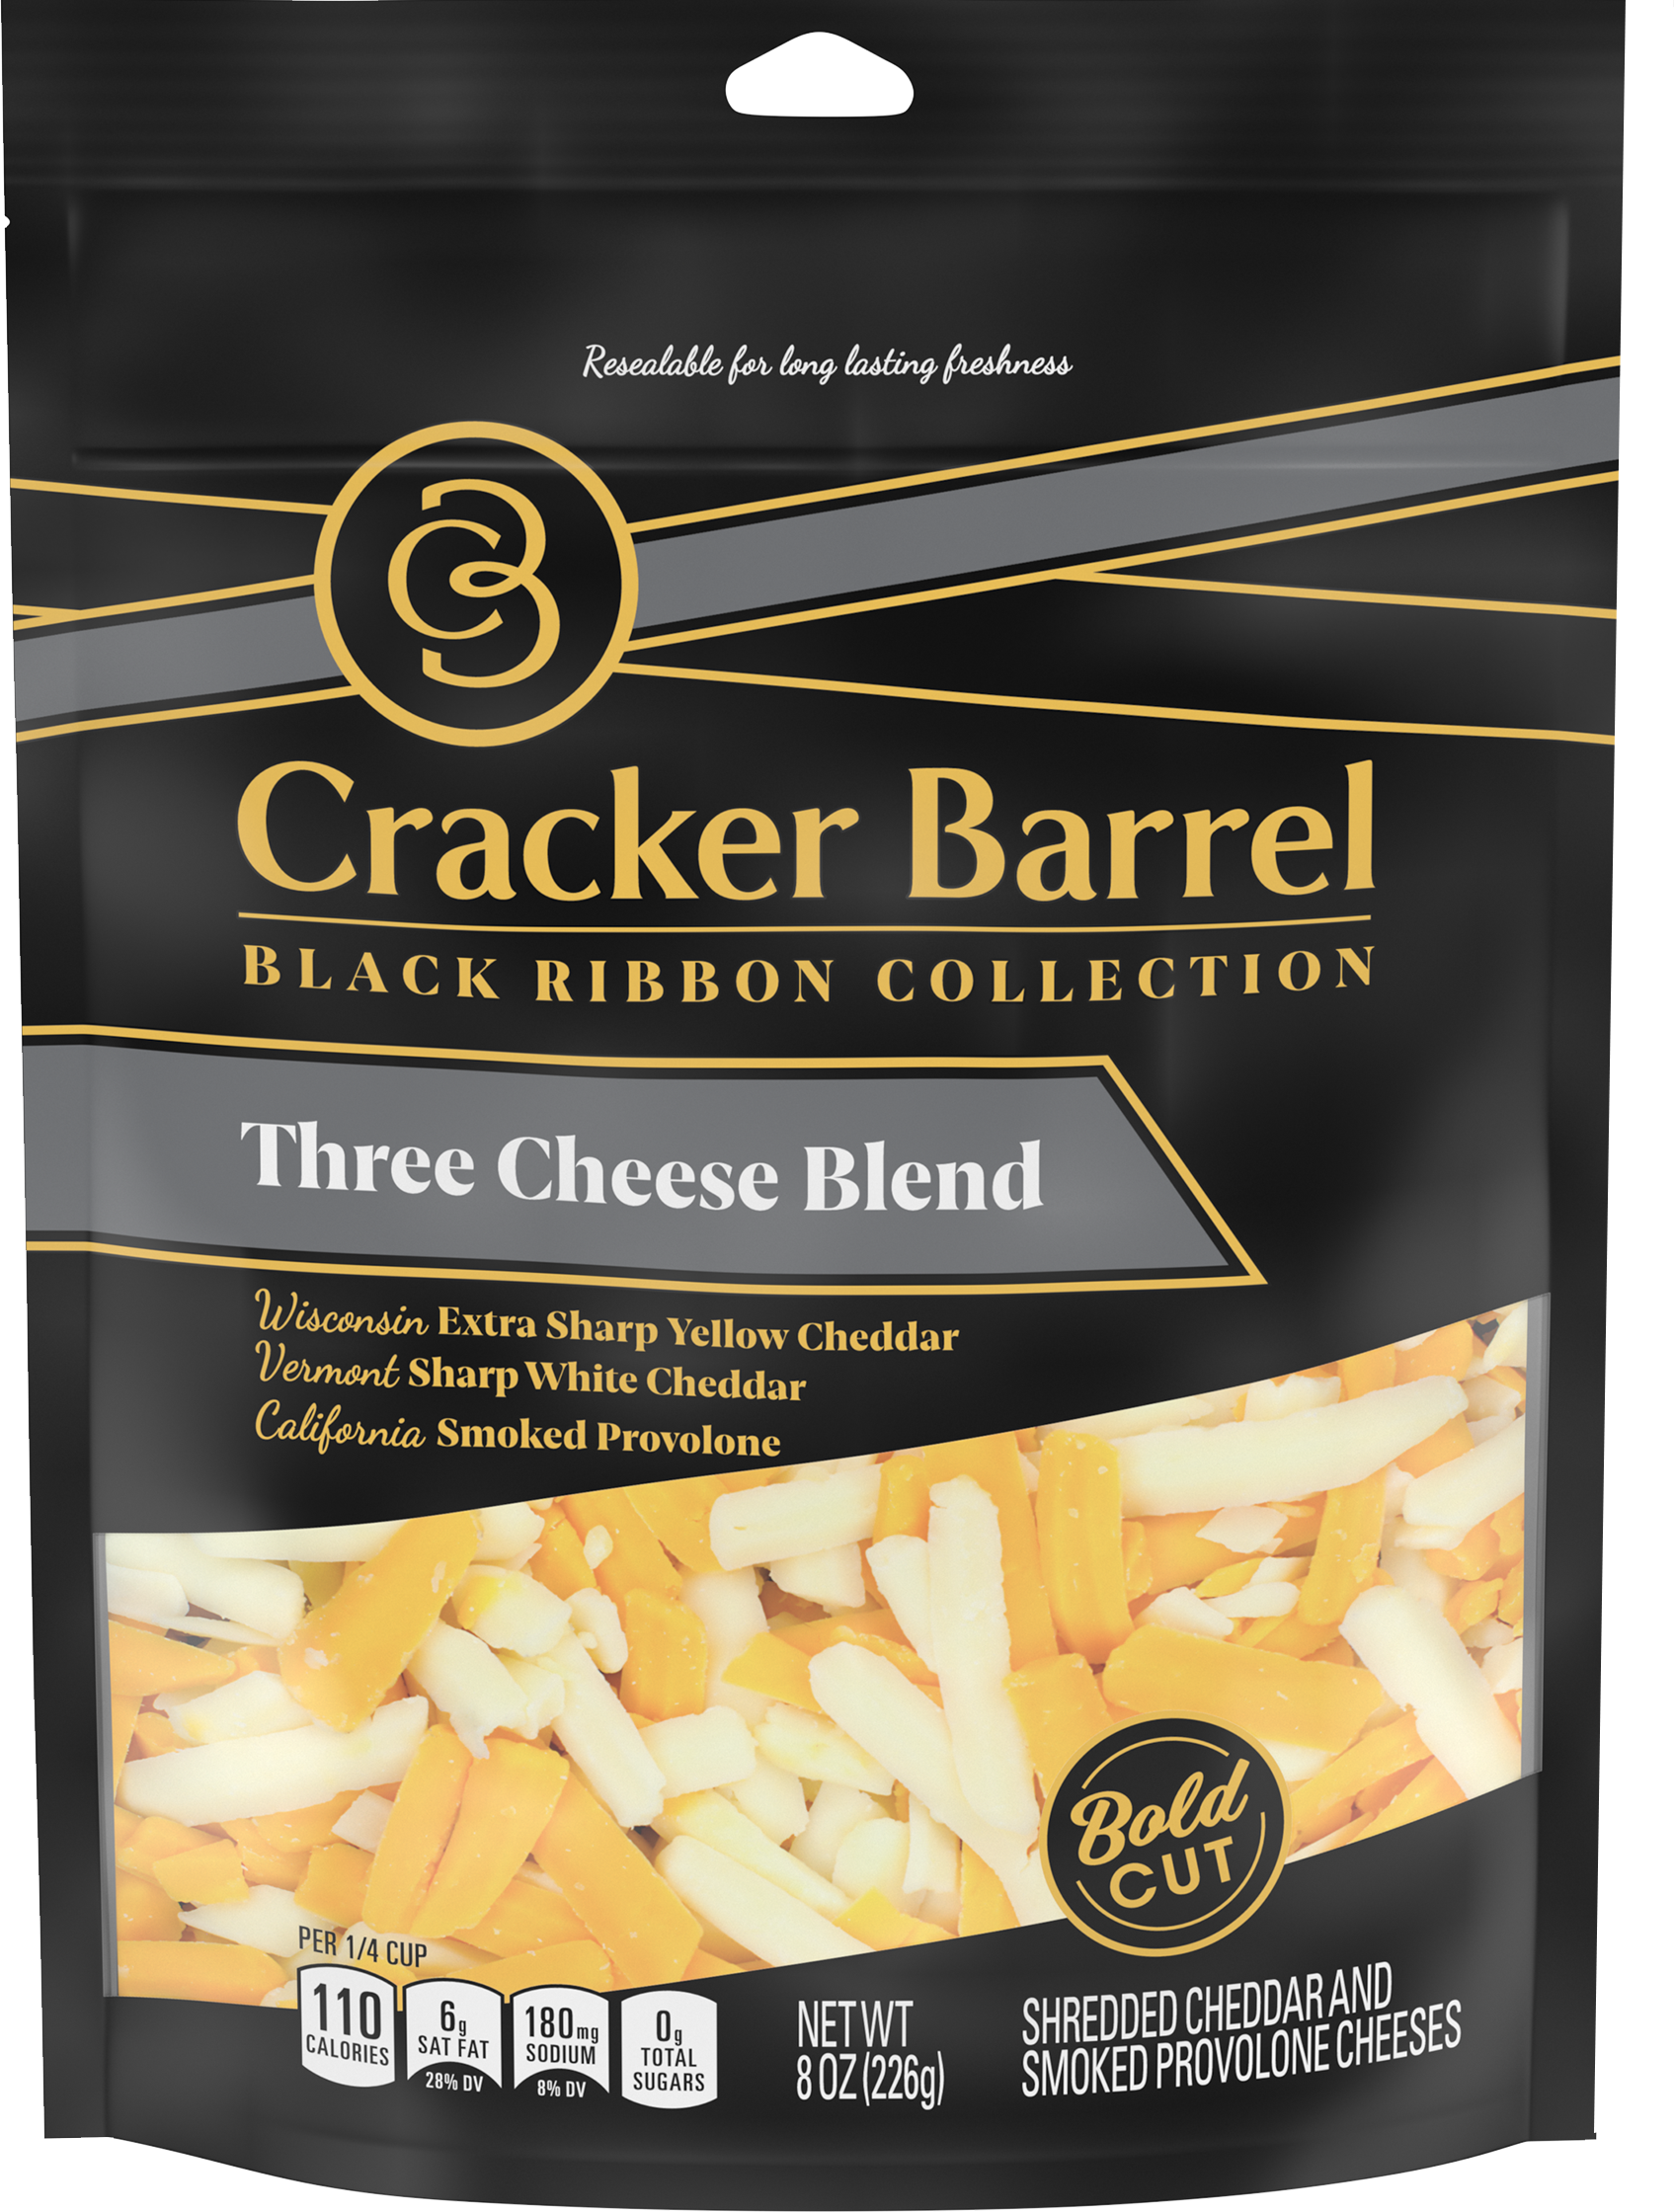 Three Cheese Blend